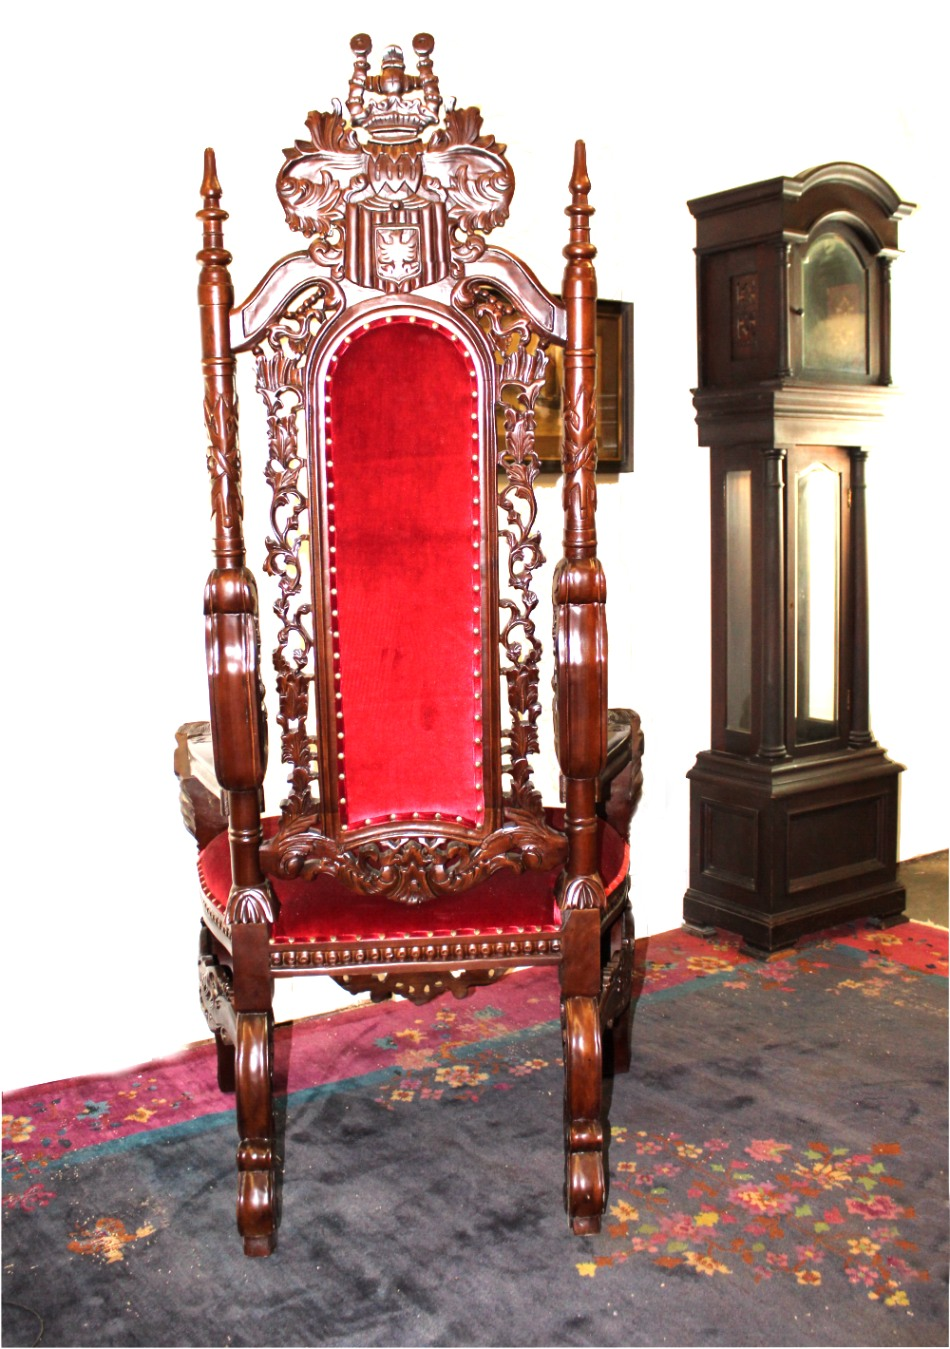 ... Giant Mahogany Throne Chair For King / Queen Or Maybe Santa Claus,  Antique Red Velvet